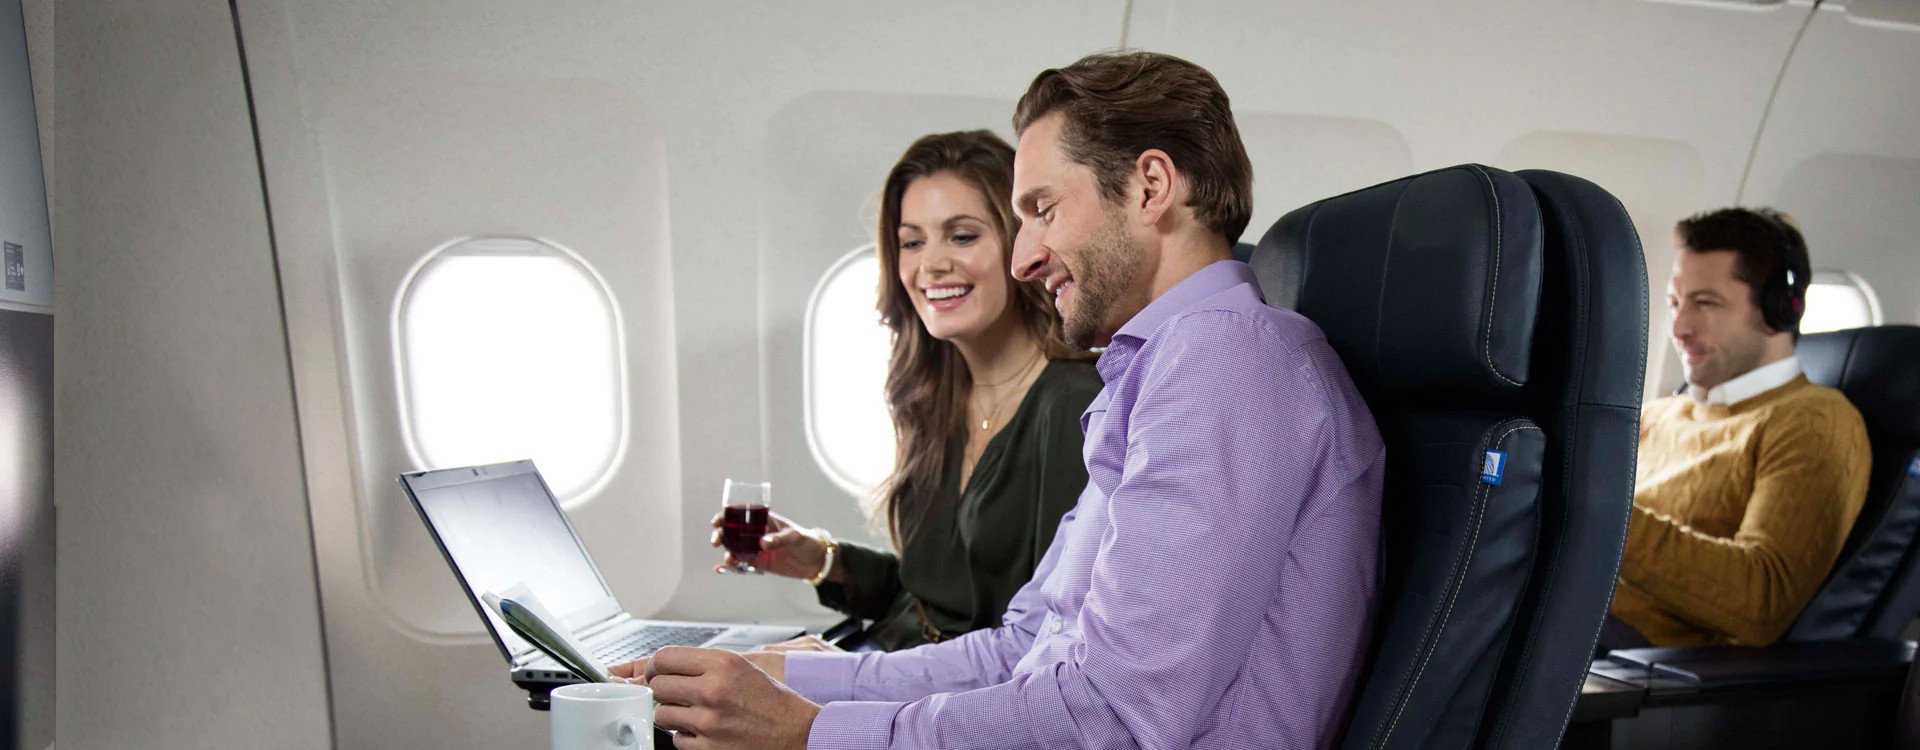 Experience the comfort and service of United First®